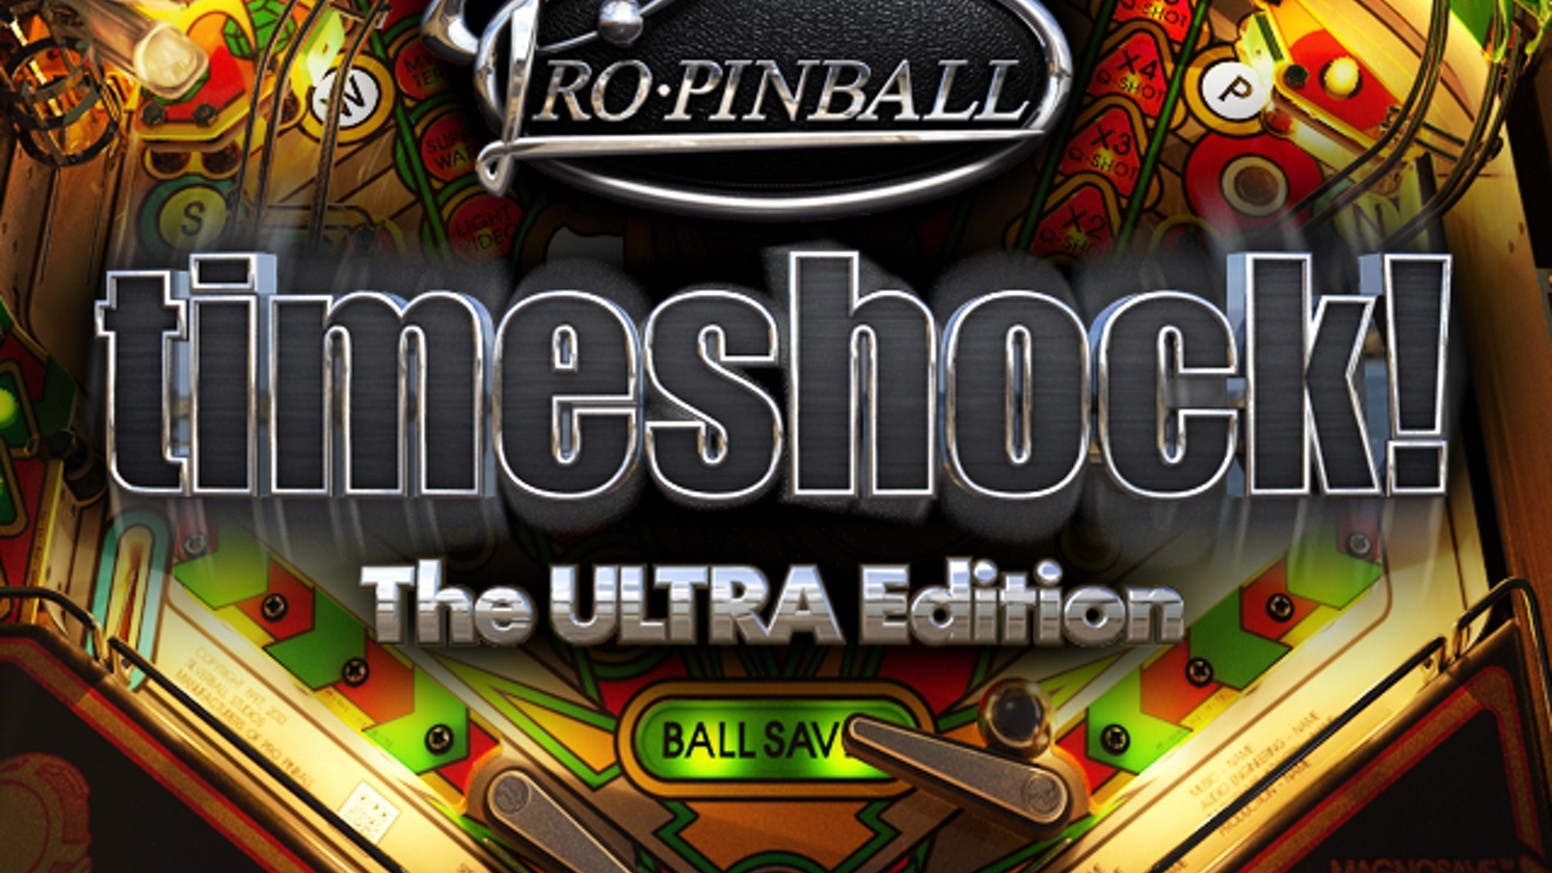 Pro Pinball: Timeshock! - The ULTRA Edition by Barnstorm Games